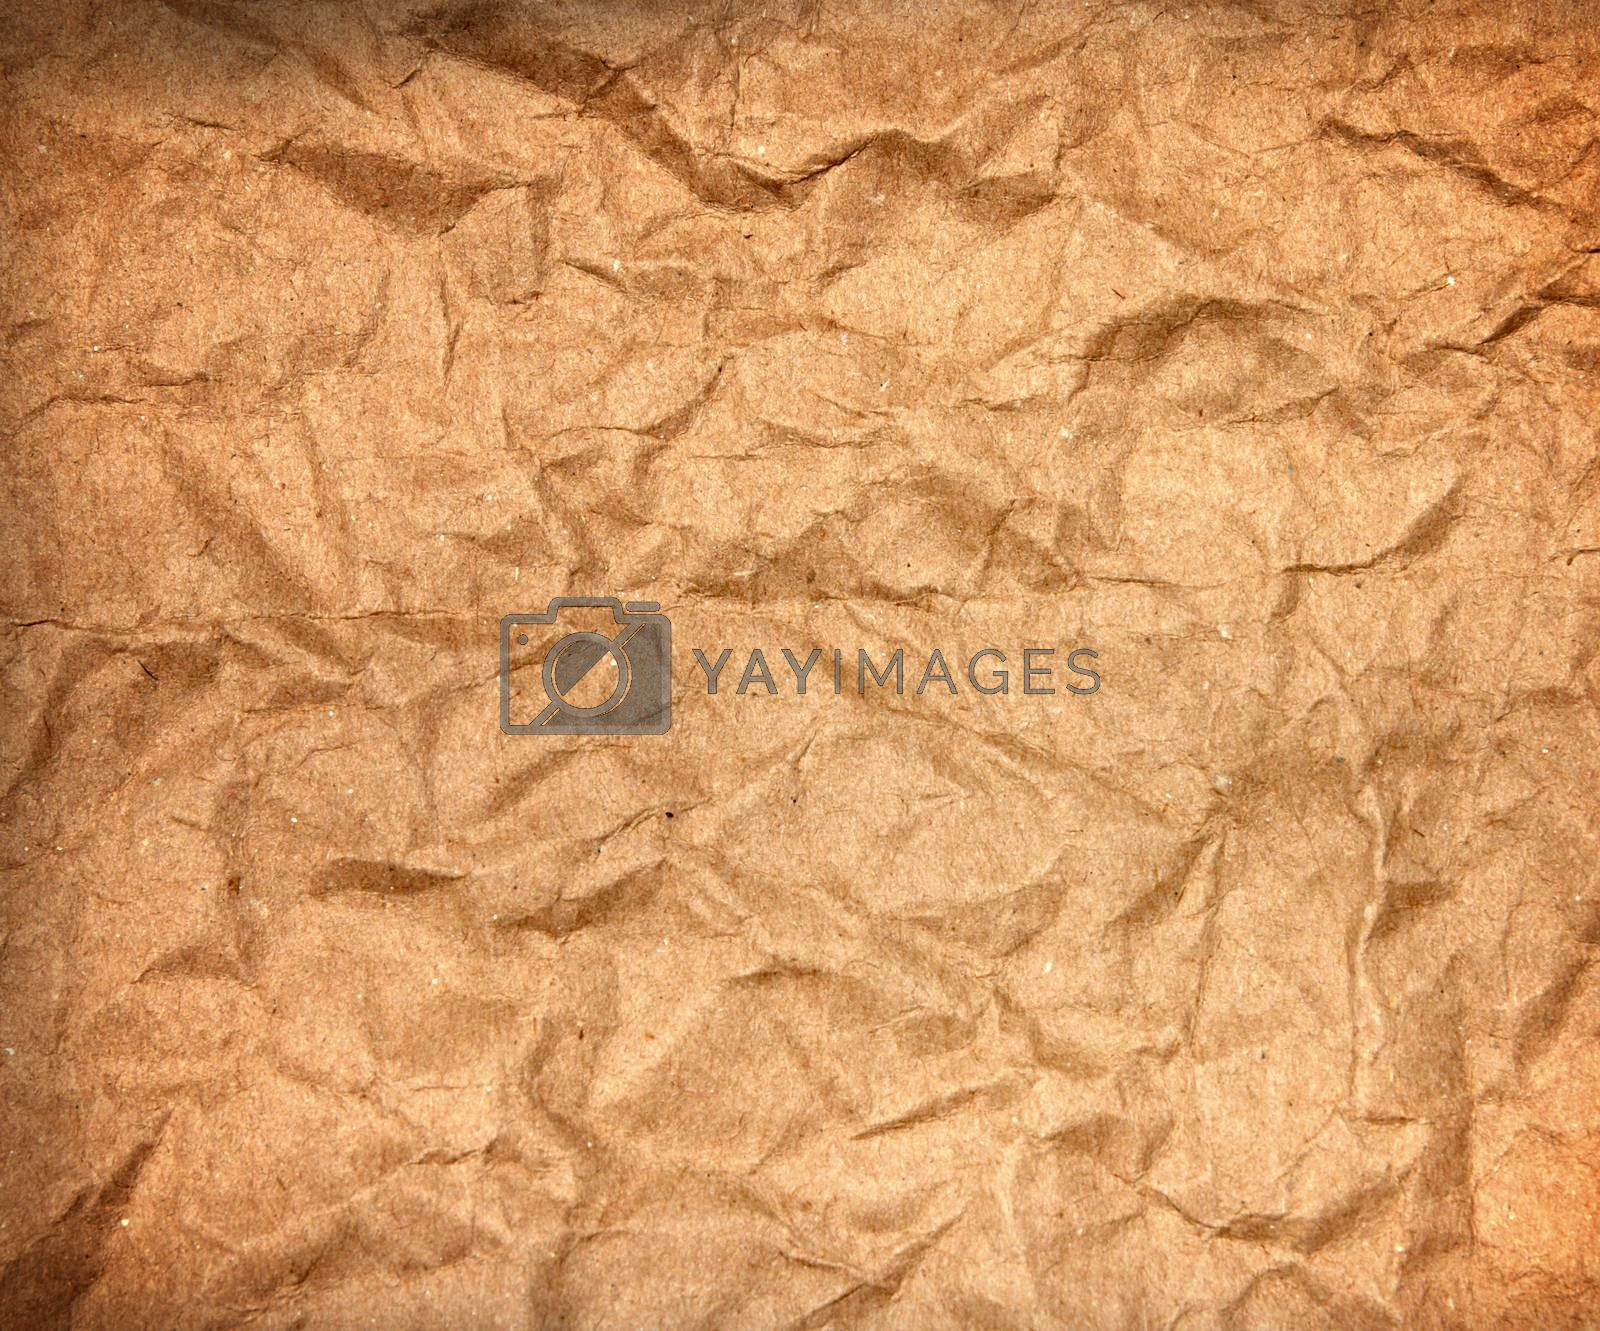 Royalty free image of Vintage old Crumpled paper texture by wyoosumran